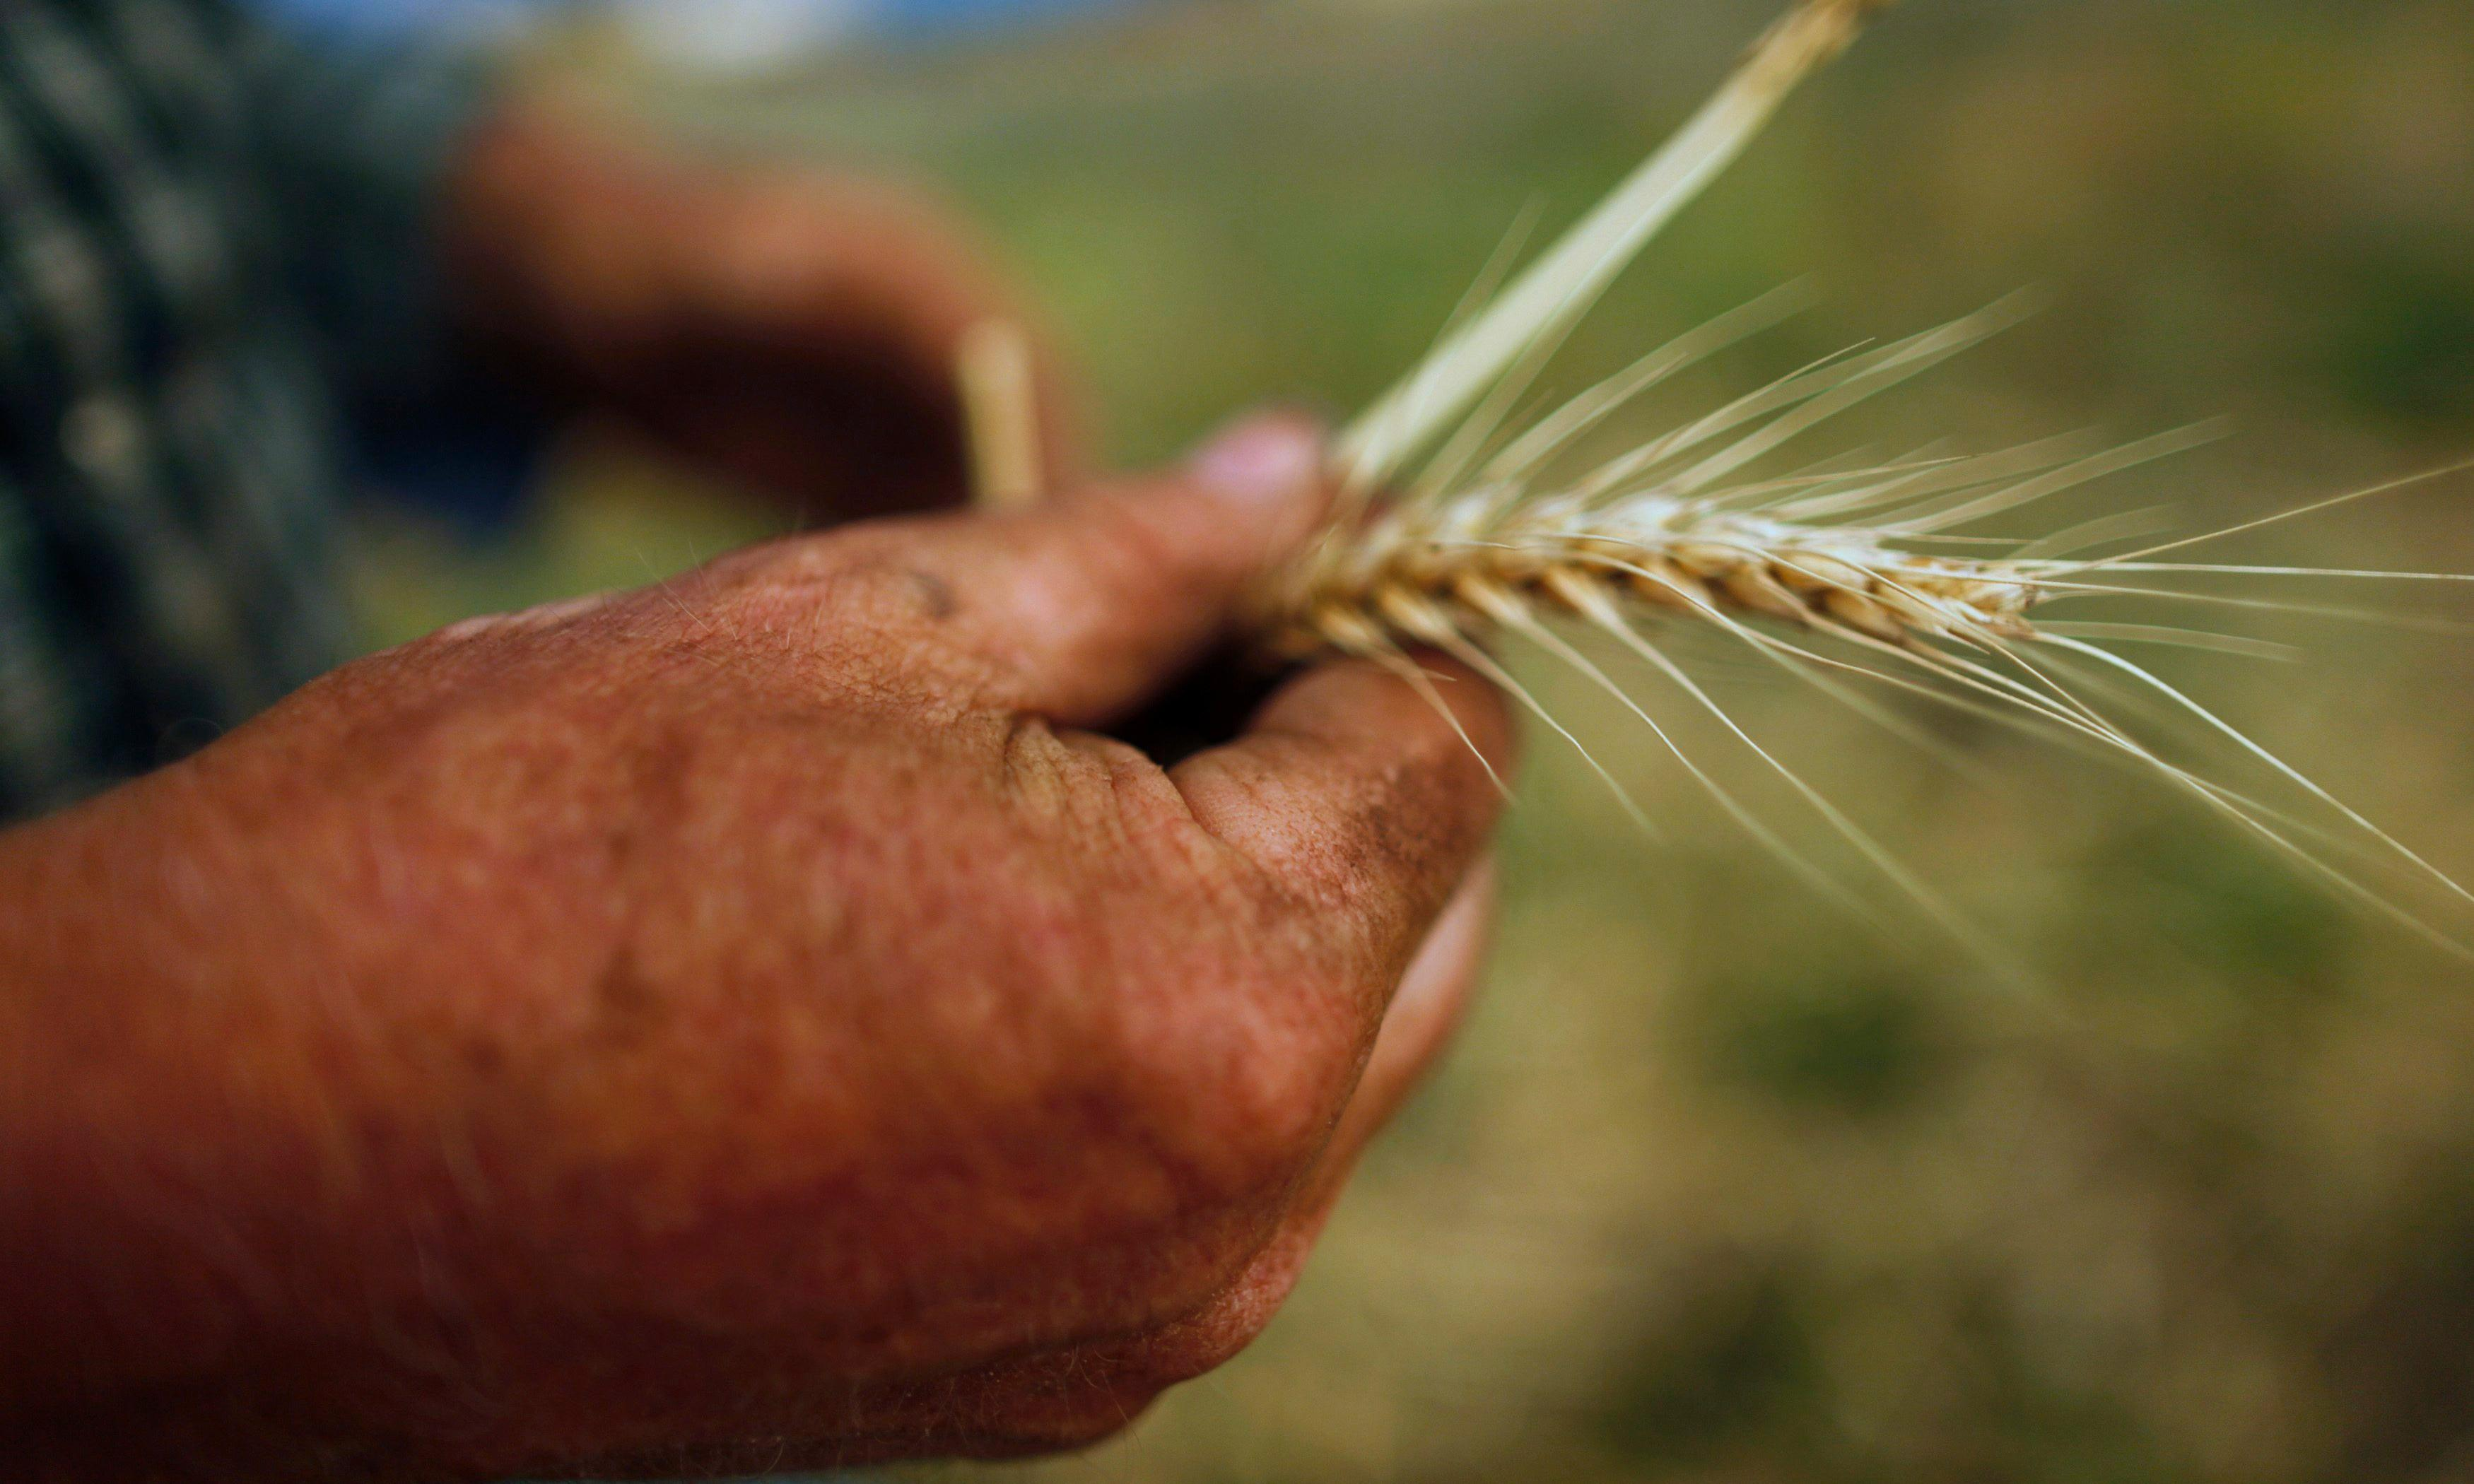 Australia to import wheat for first time in 12 years as drought eats into grain production